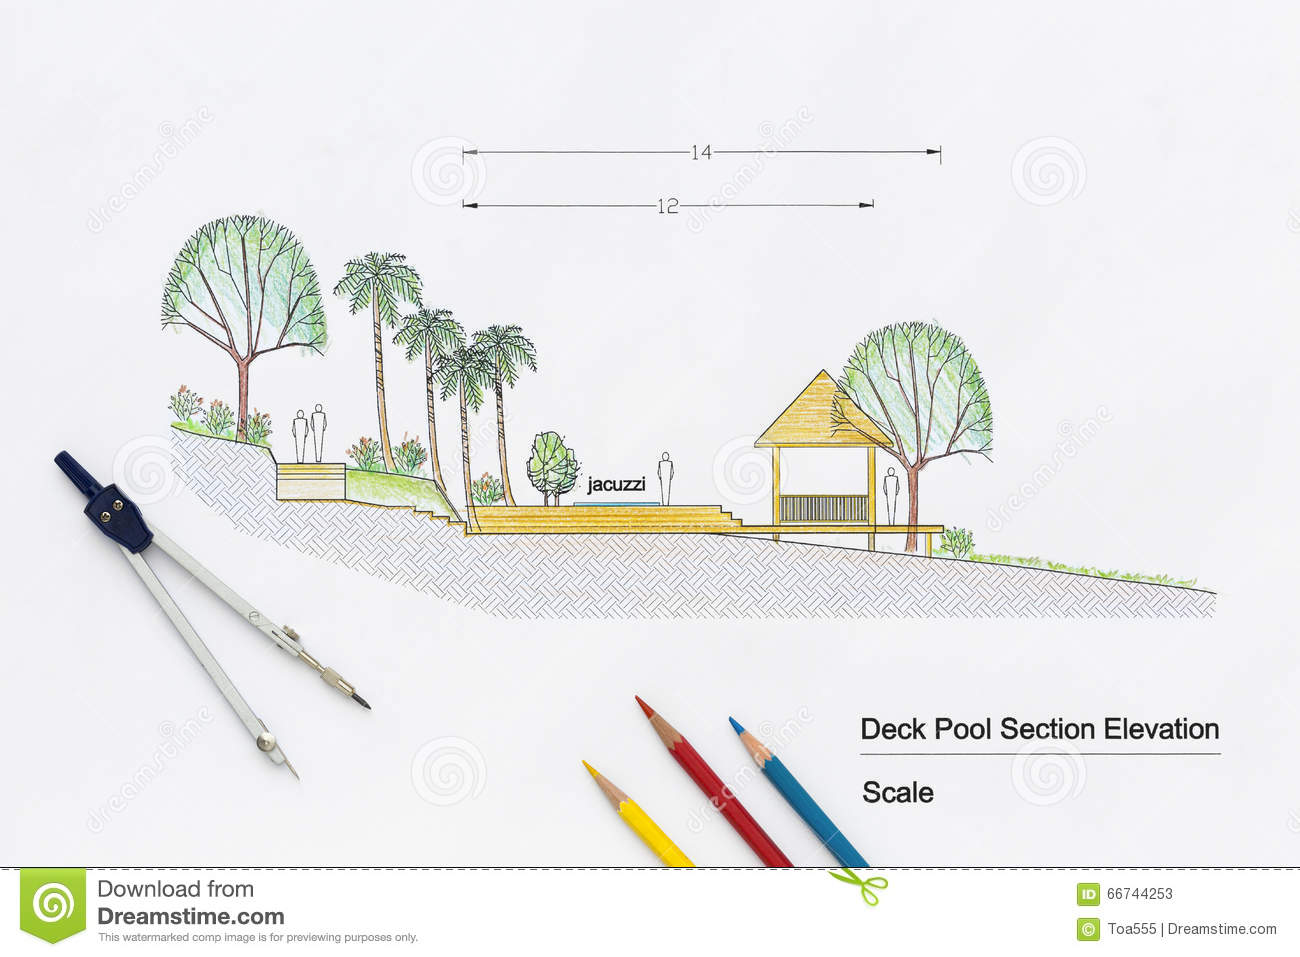 Architecture design deck pool section elevation stock image image download architecture design deck pool section elevation stock image image of elevation blueprint malvernweather Choice Image